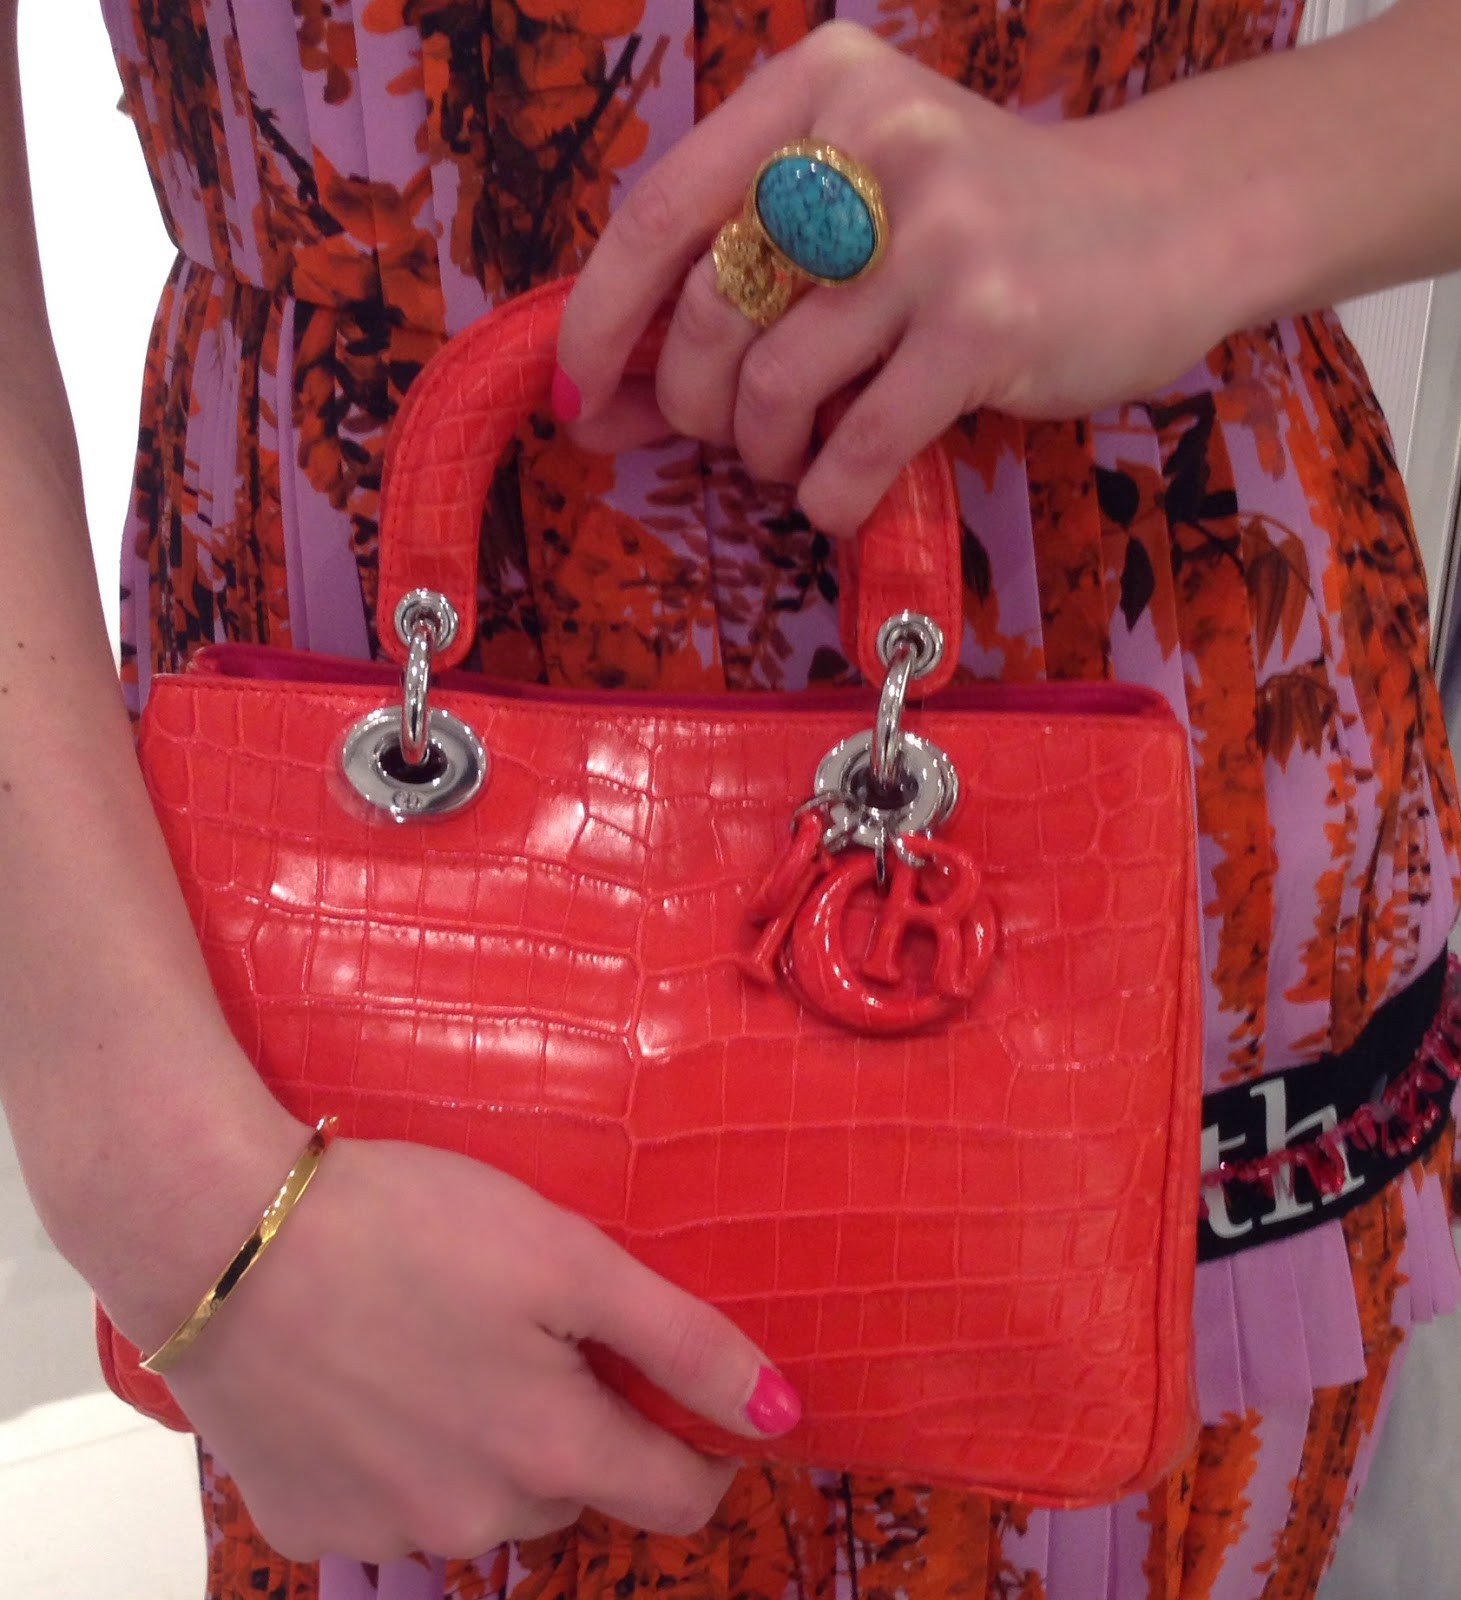 lady dior bag, ysl ring, monica vinader, fiji bracelet, dior dress, dior printed dress